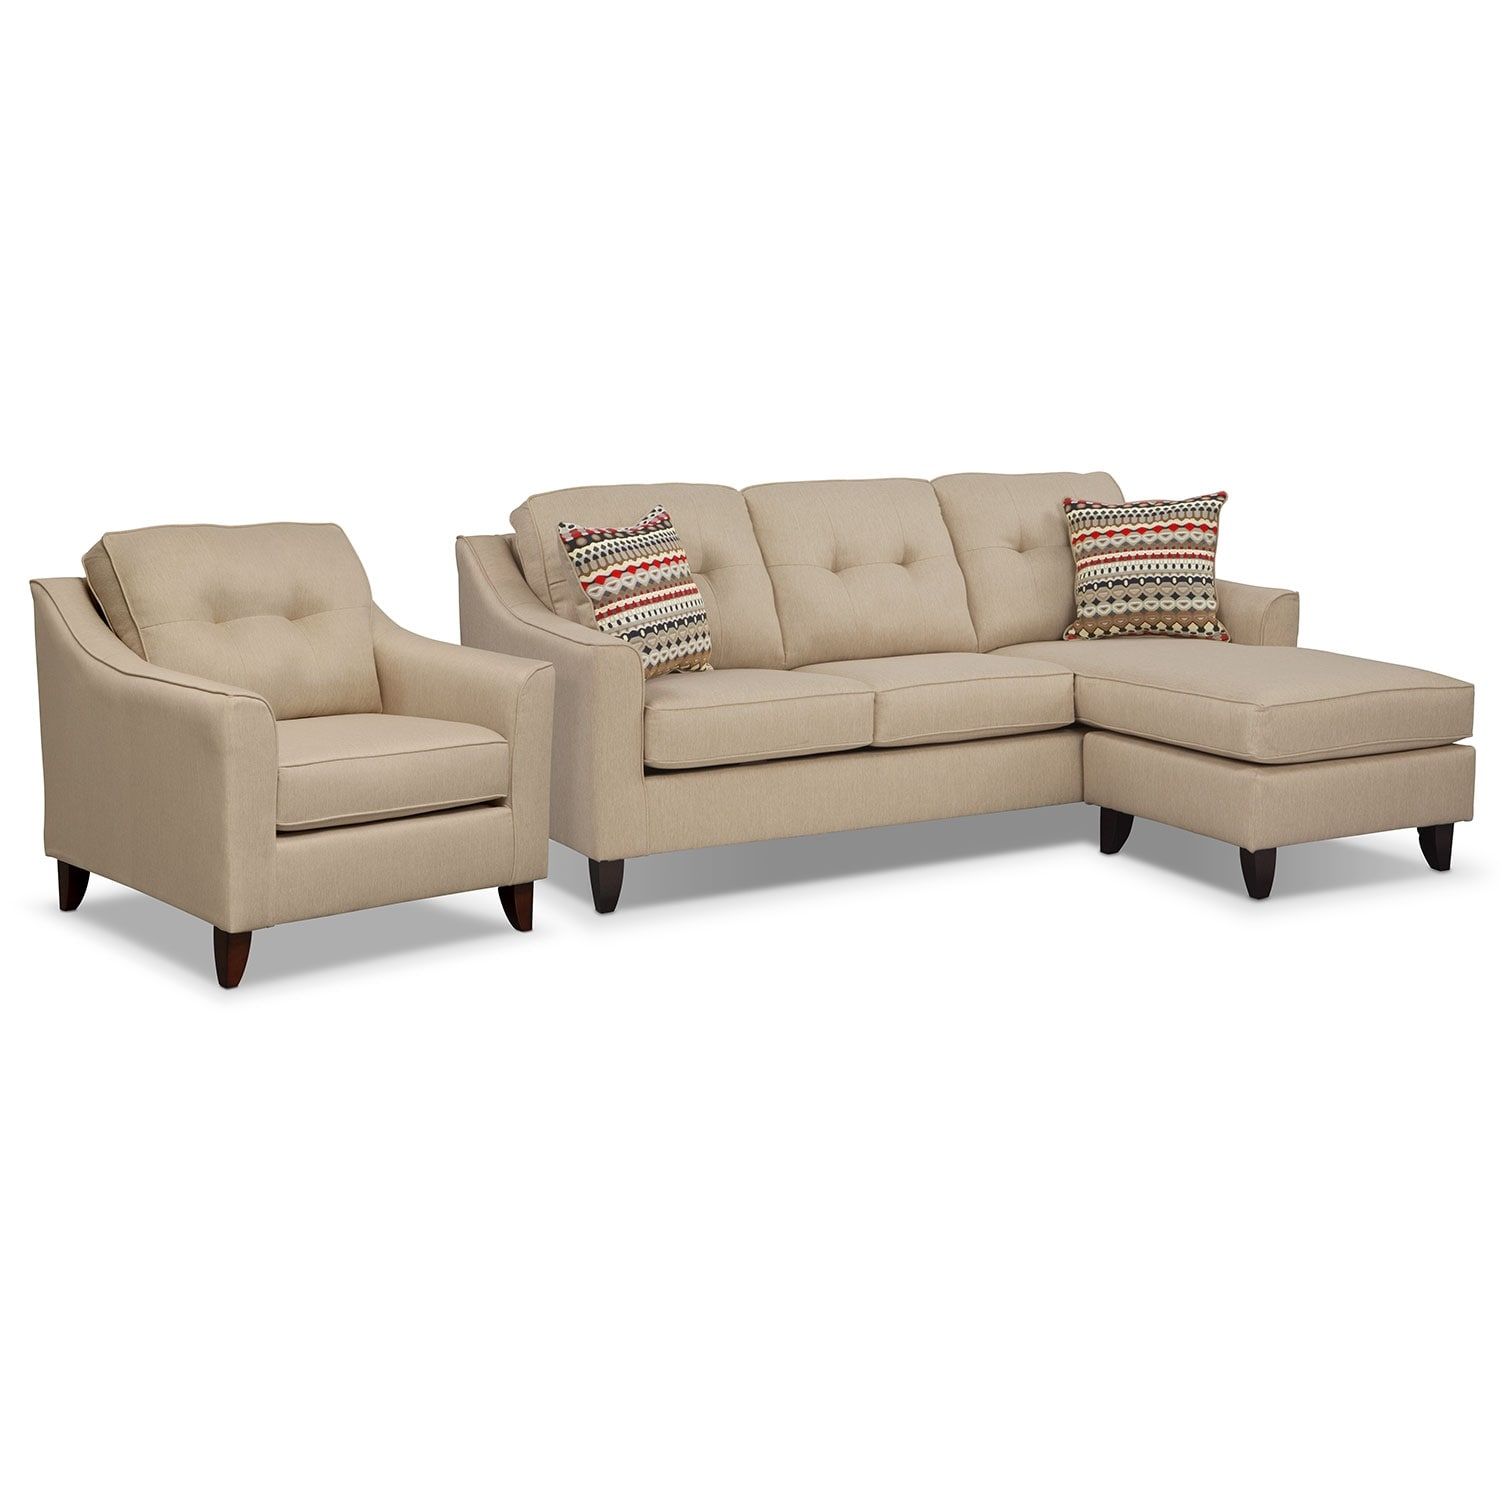 On sale furniture american signature furniture for American signature furniture commercial chaise